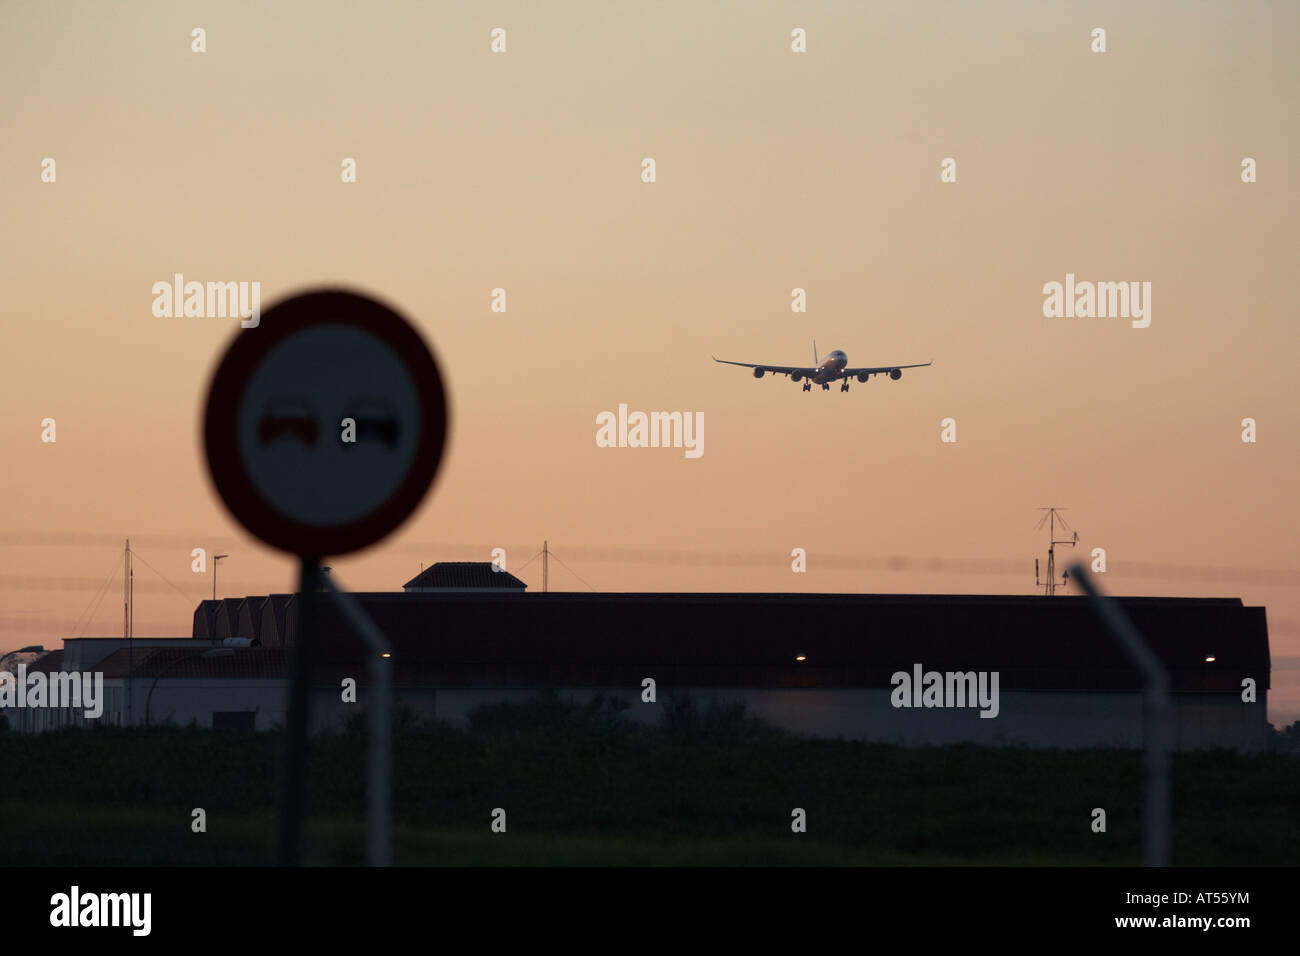 aircraft on final approach in evening light over perimeter fence buildings near Los Rodeos Tenerife North TFN airport - Stock Image